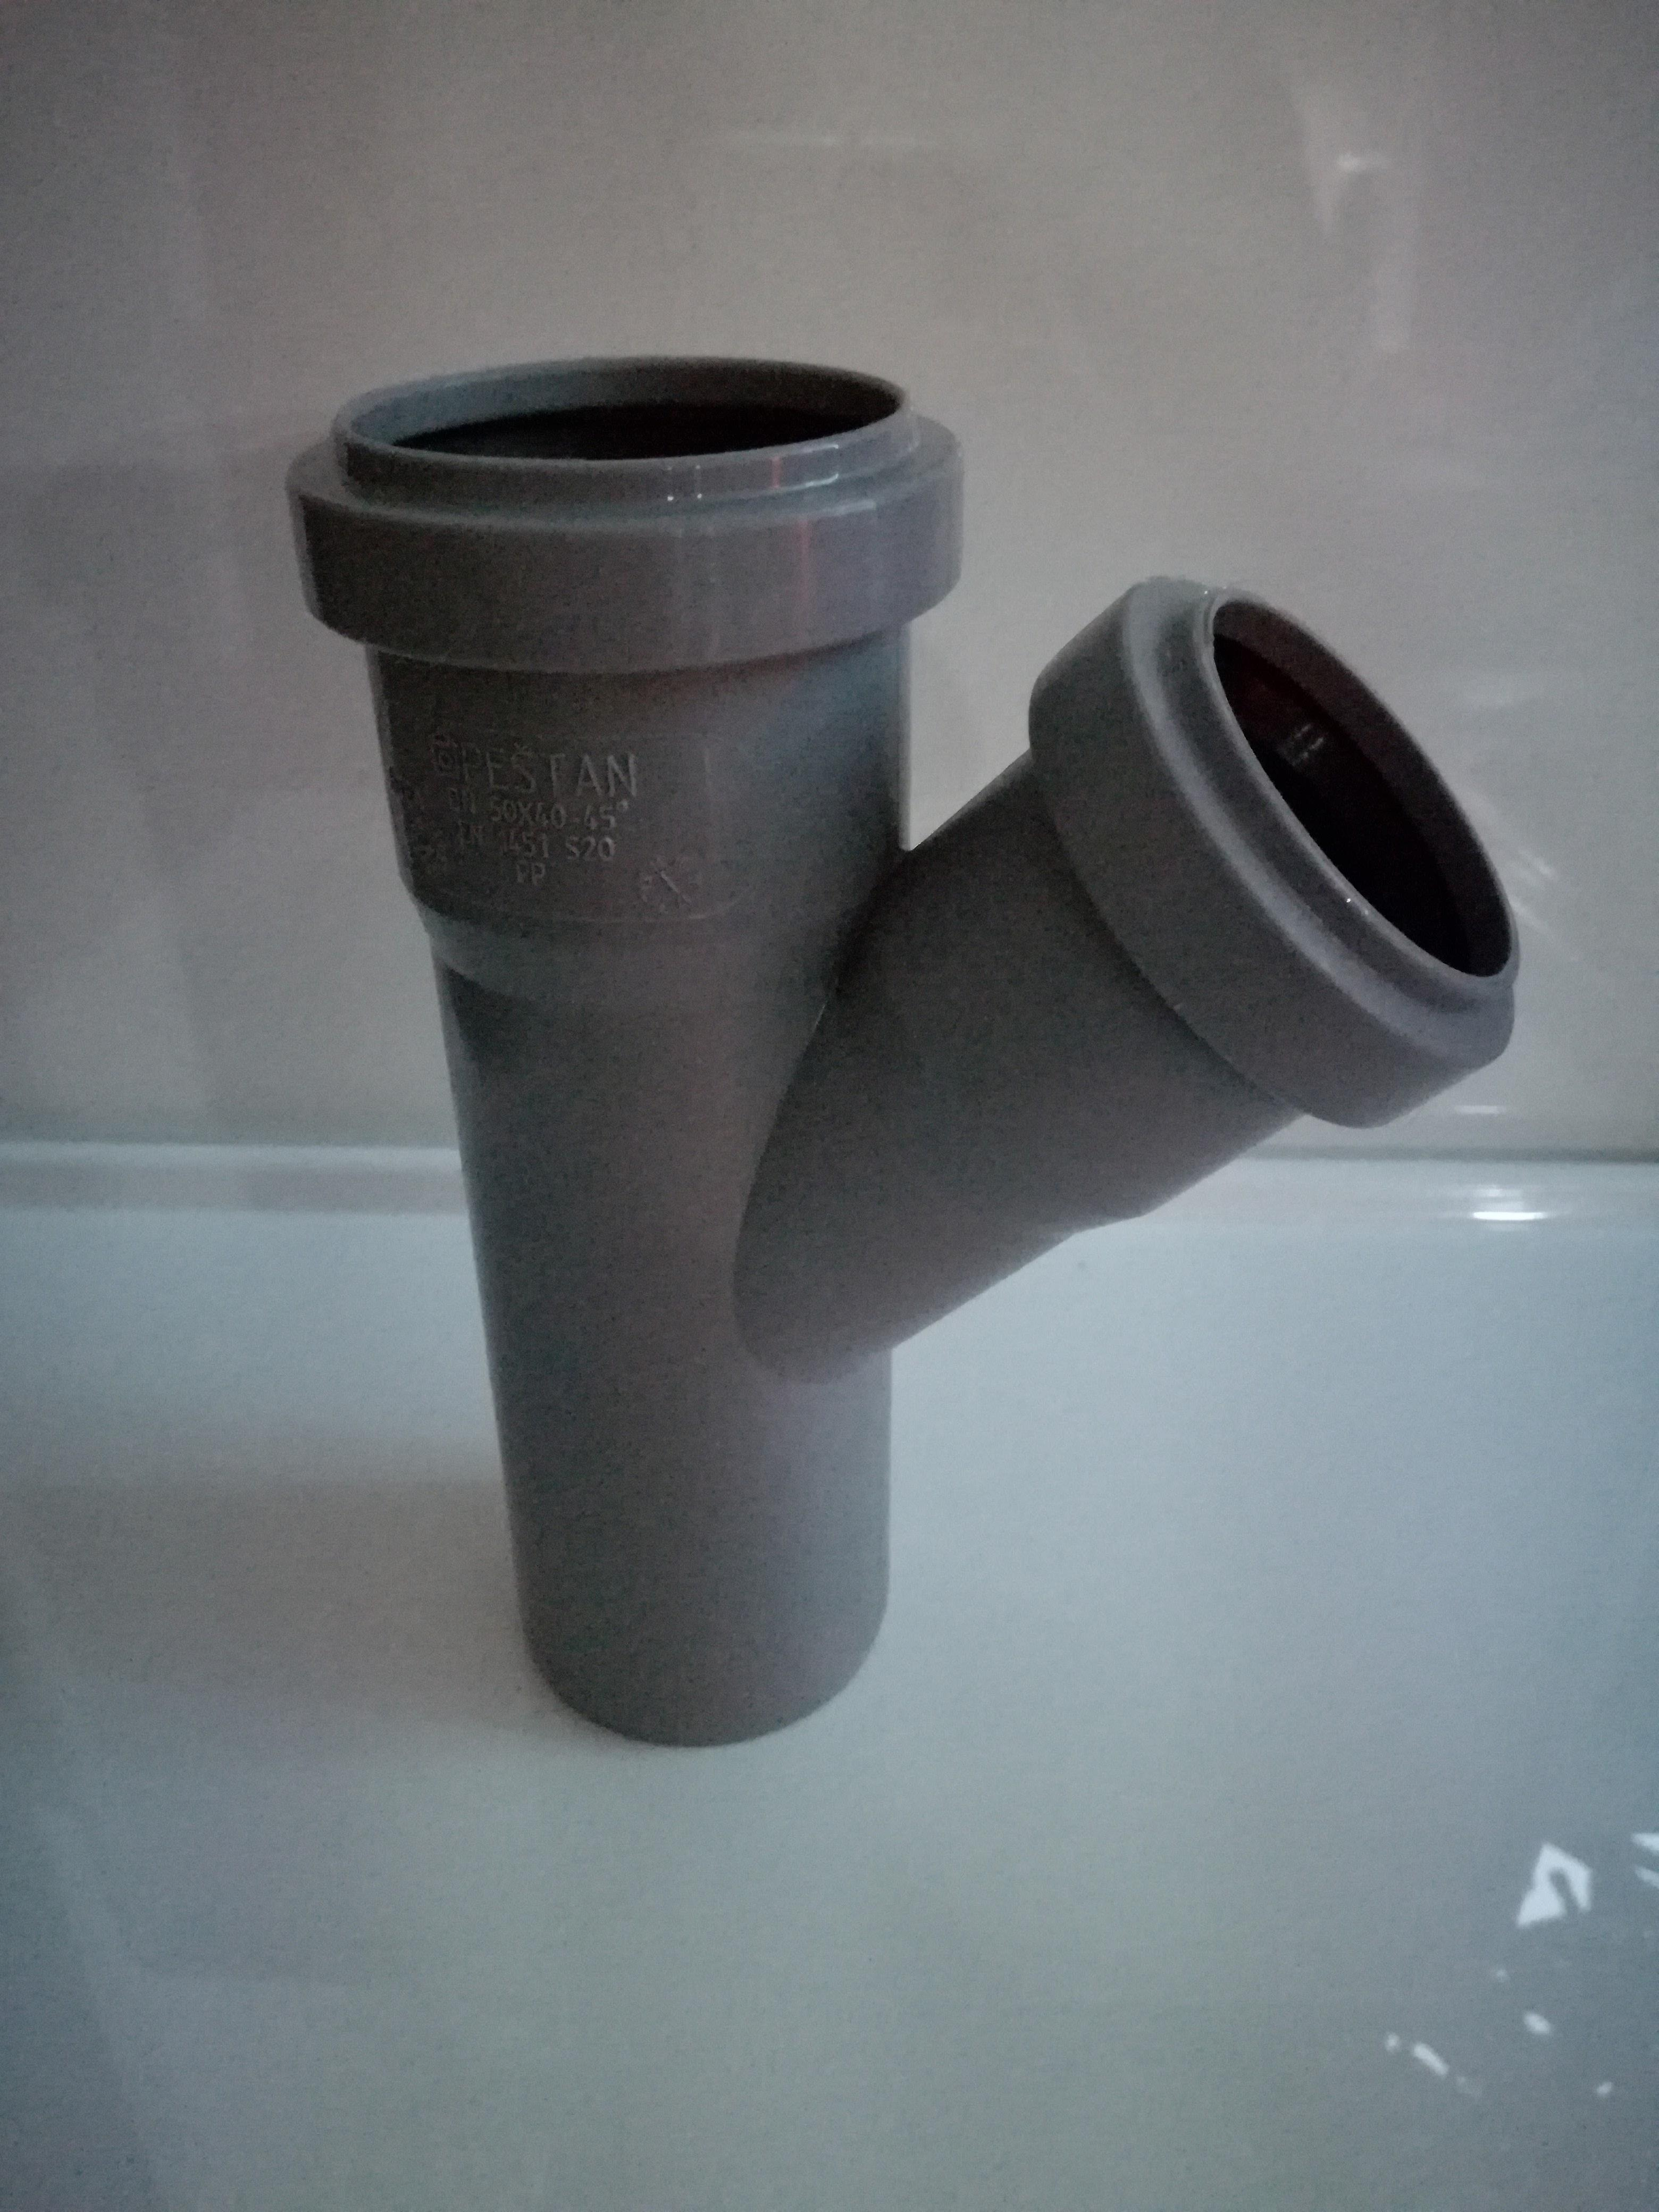 Push-fit Waste Fittings - Branch 45 Degree (y shape) - 32mm Diameter